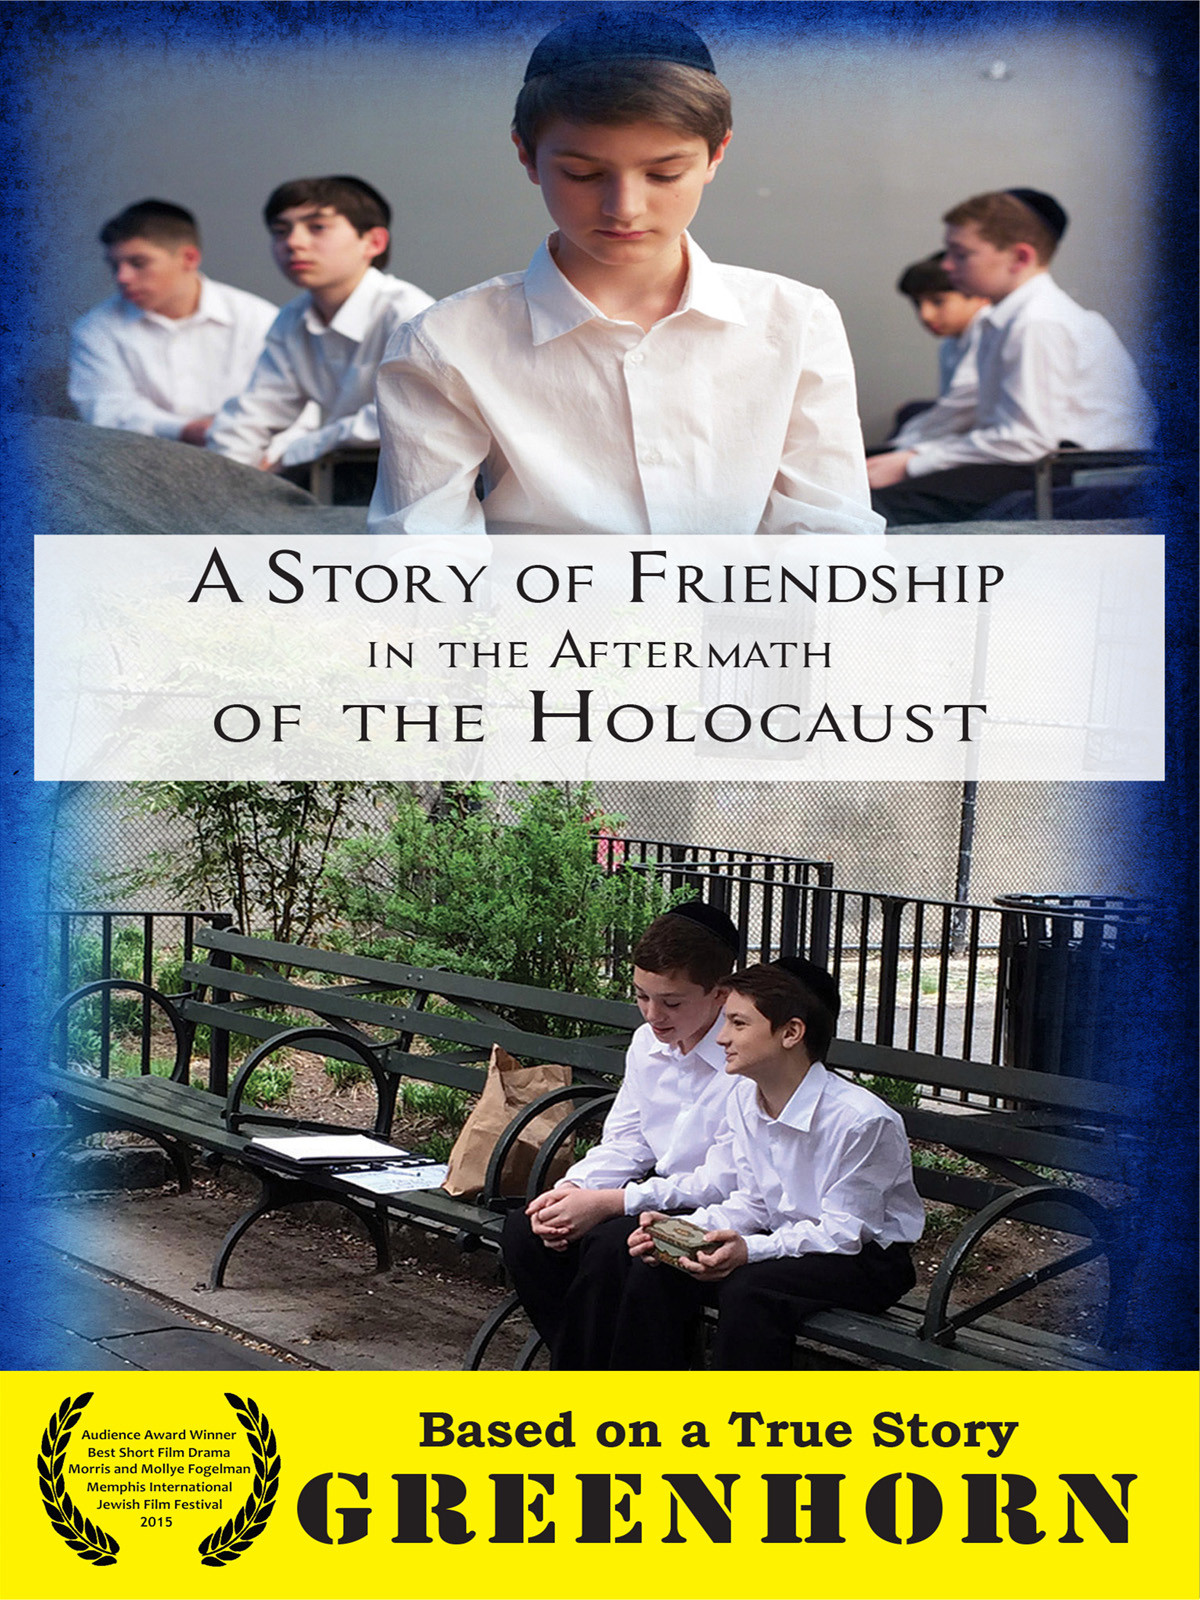 L4812 - Greenhorn ? A Story of Friendship in the Aftermath of the Holocaust